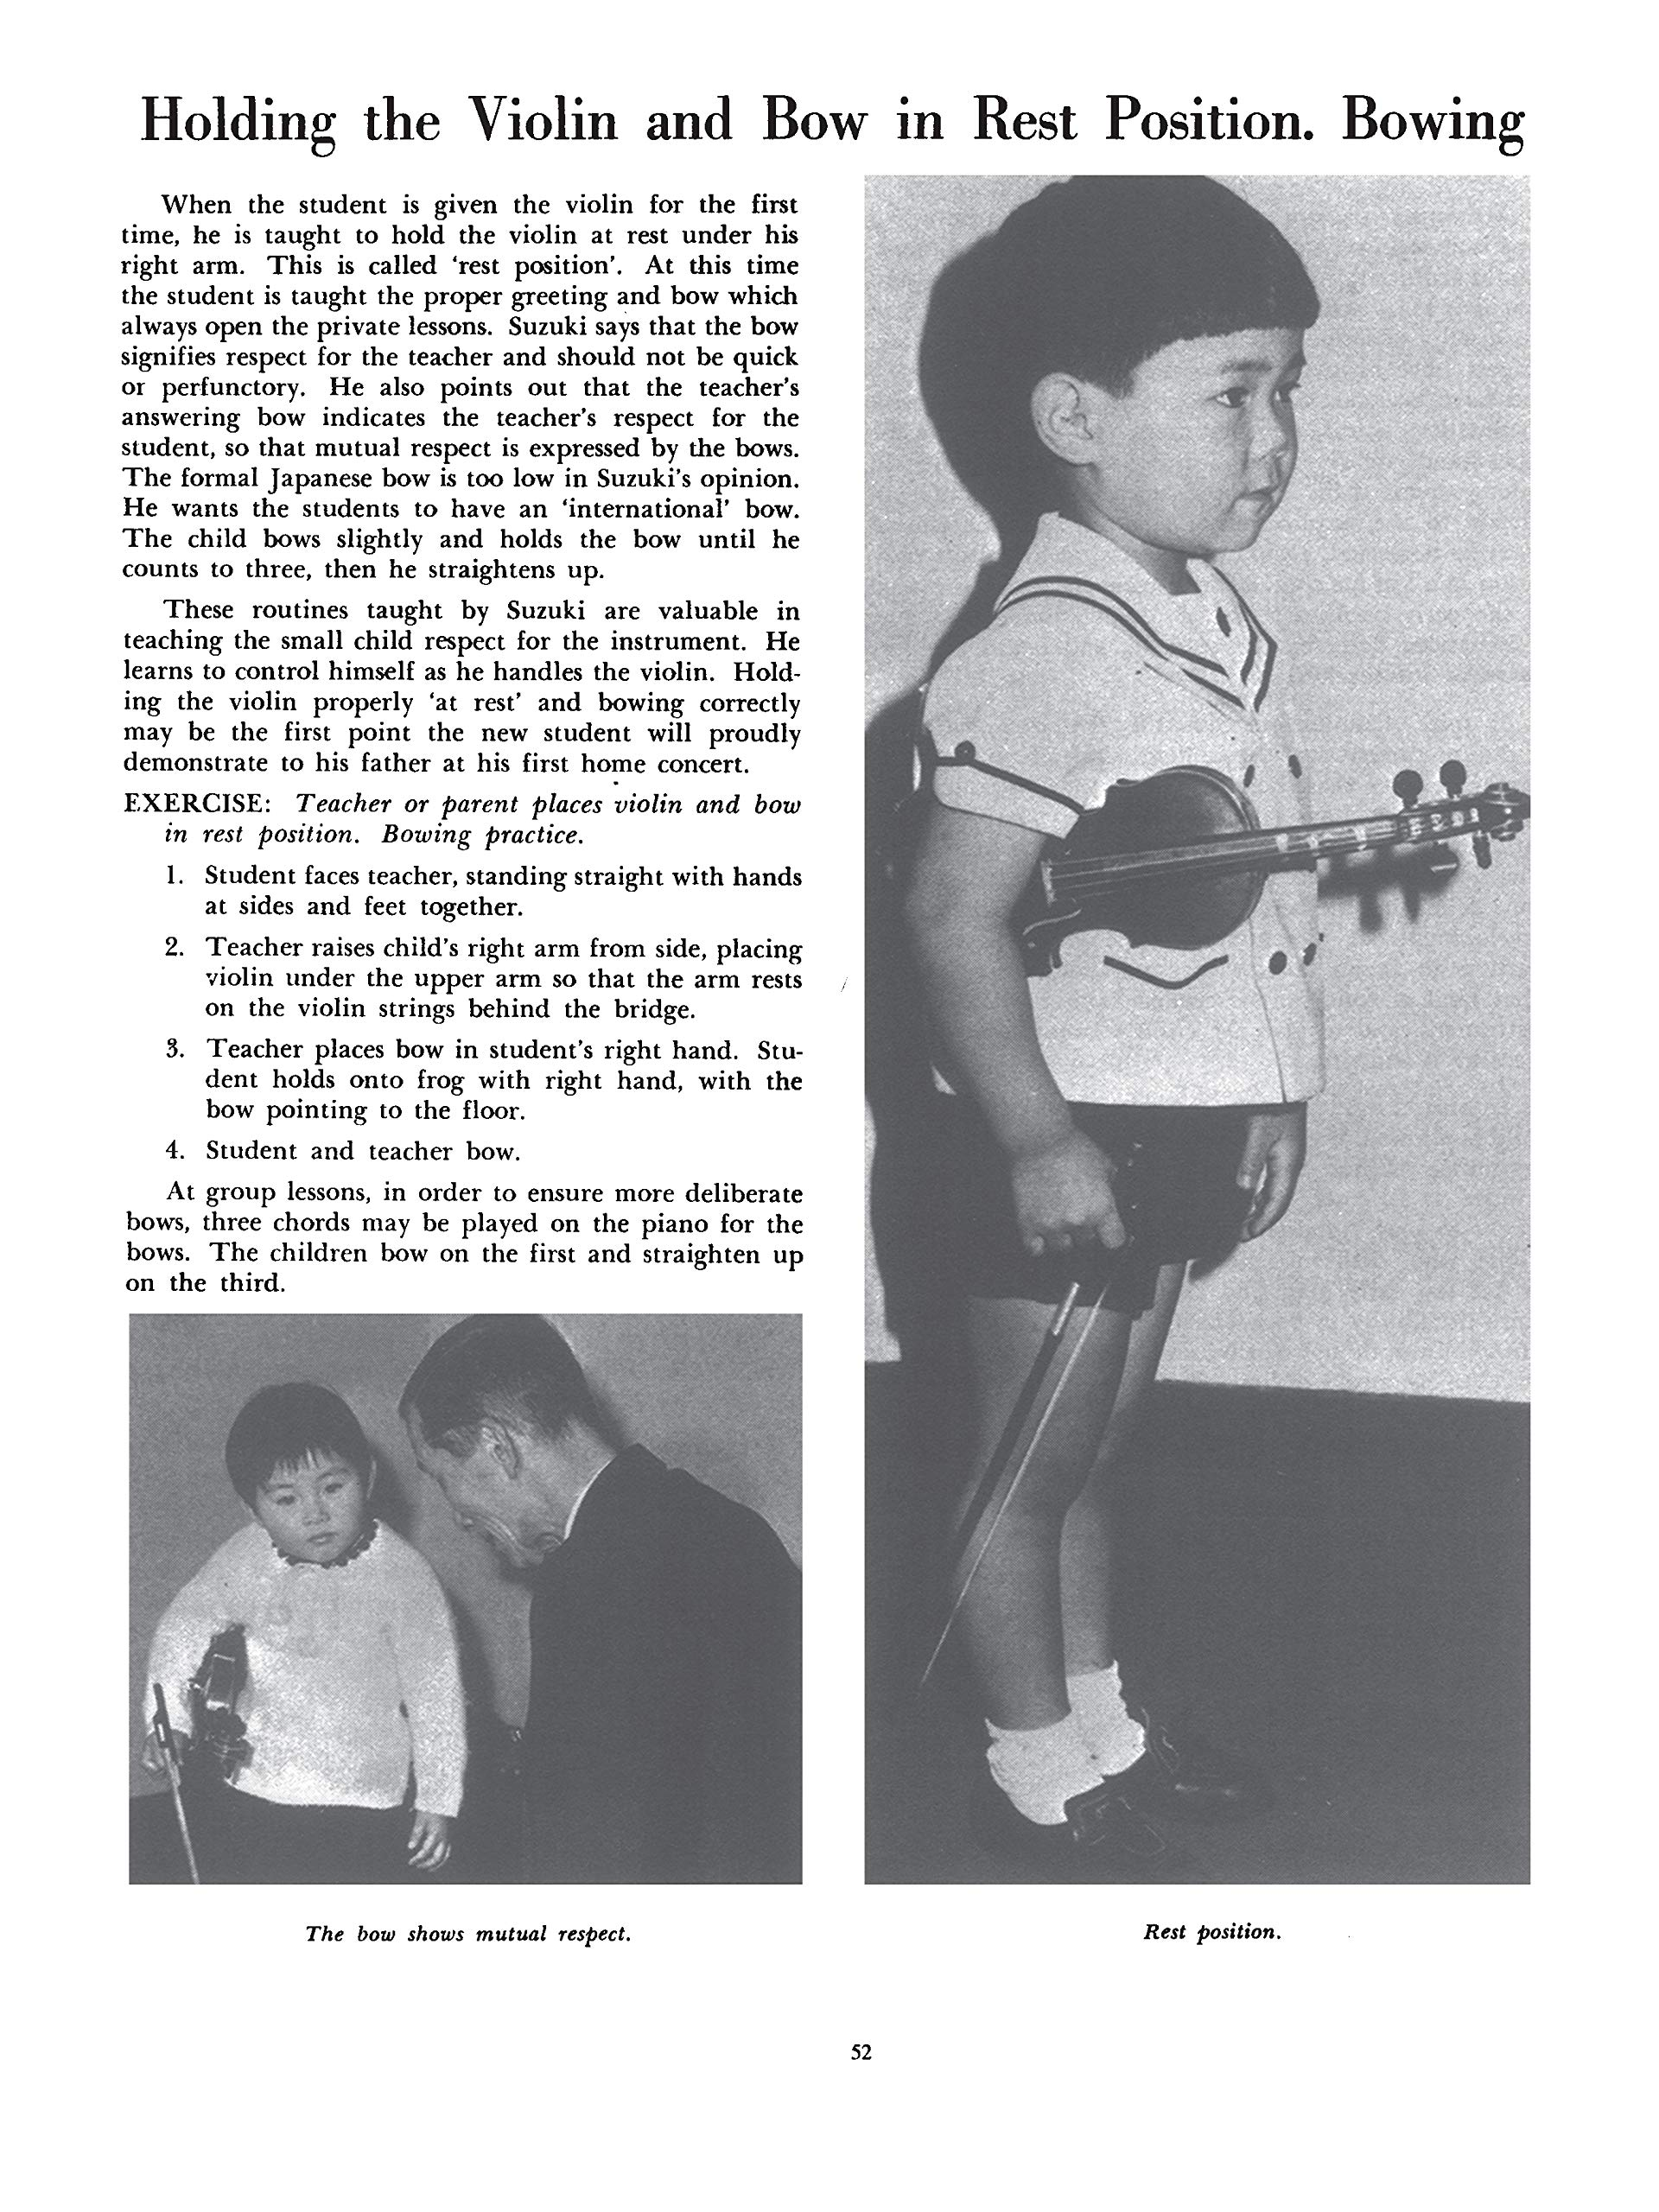 Suzuki Violinist: A Guide for Teachers and Parents Suzuki Method ...